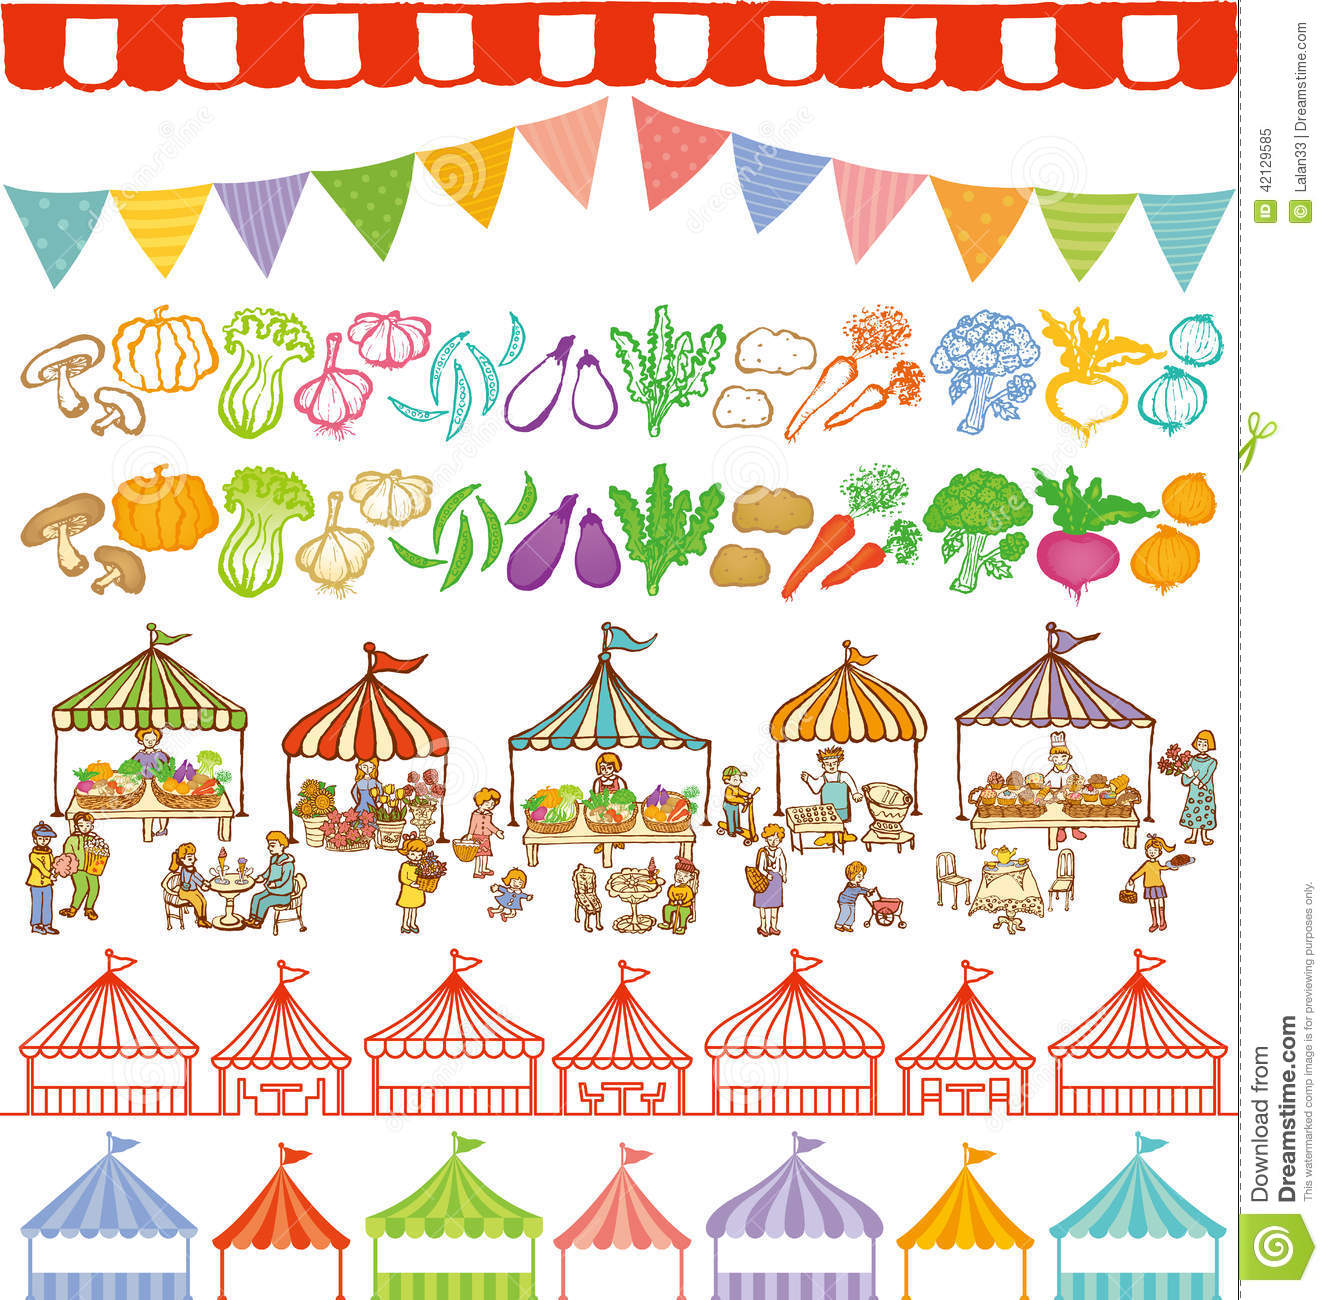 Market Place Illustrations And Event Tents Frames. Stock Vector.